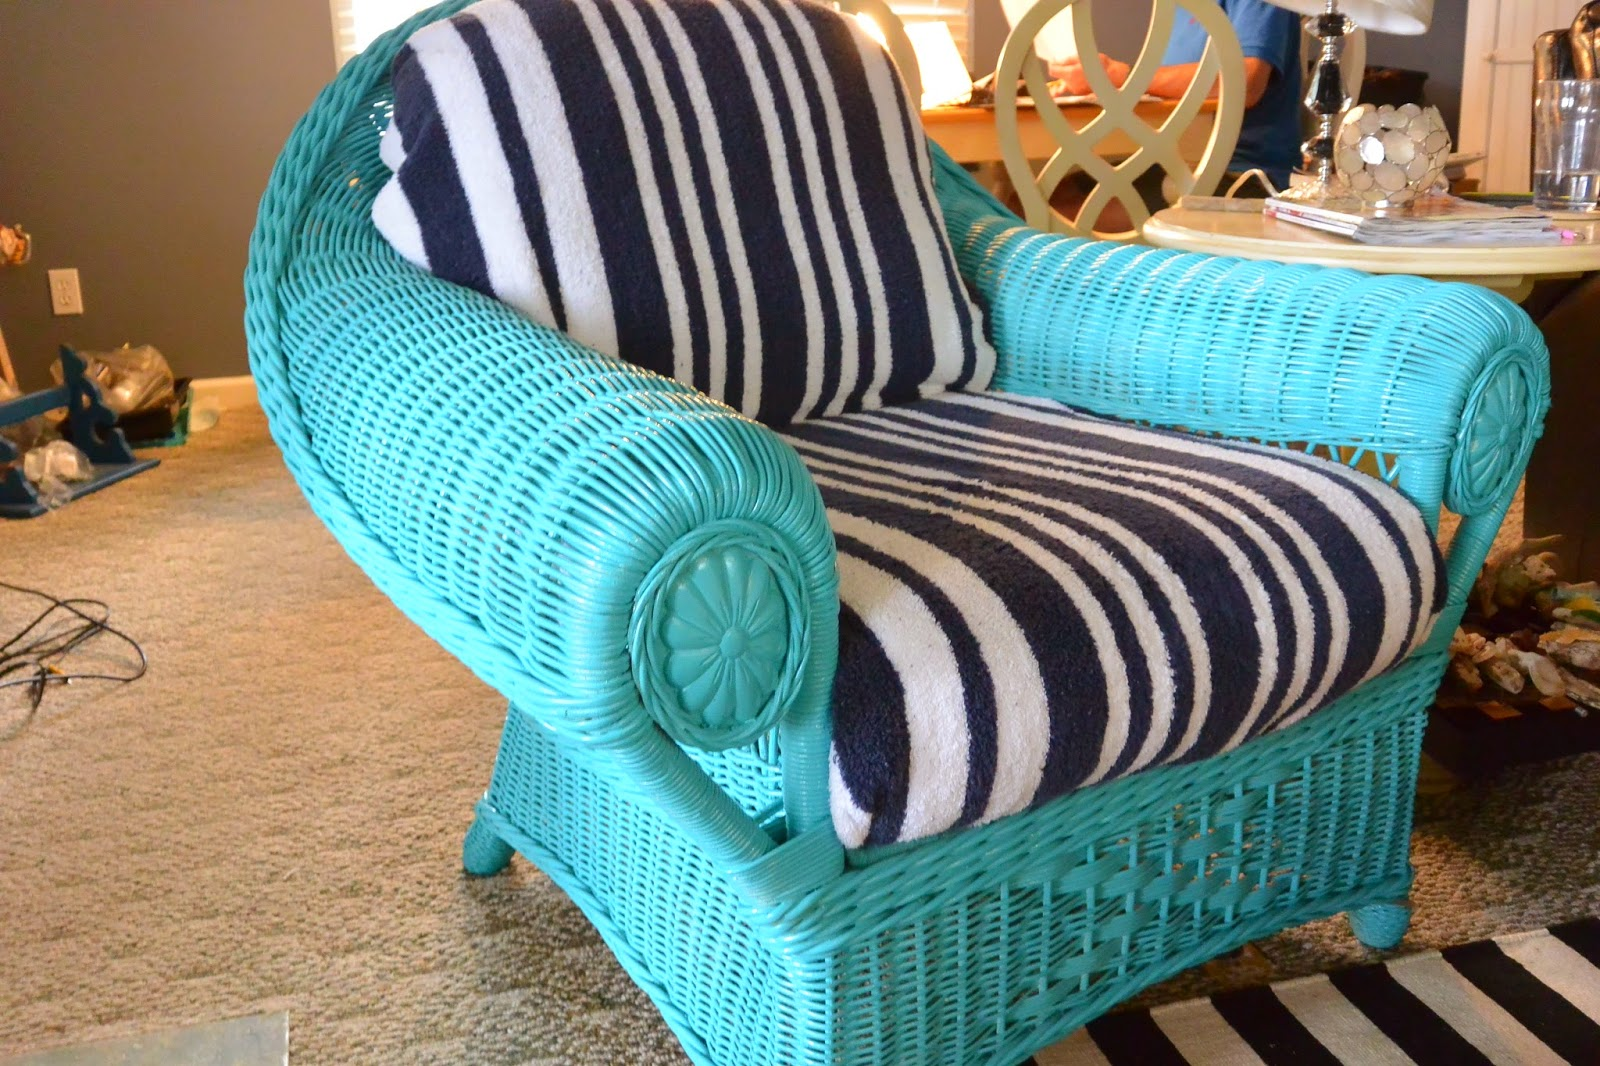 Do Any Of You Have Hand Me Down Furniture? The Family Beach House Came  Furnished, So We Are Getting Creative With Ways To Update Old And Tired  Pieces While ...